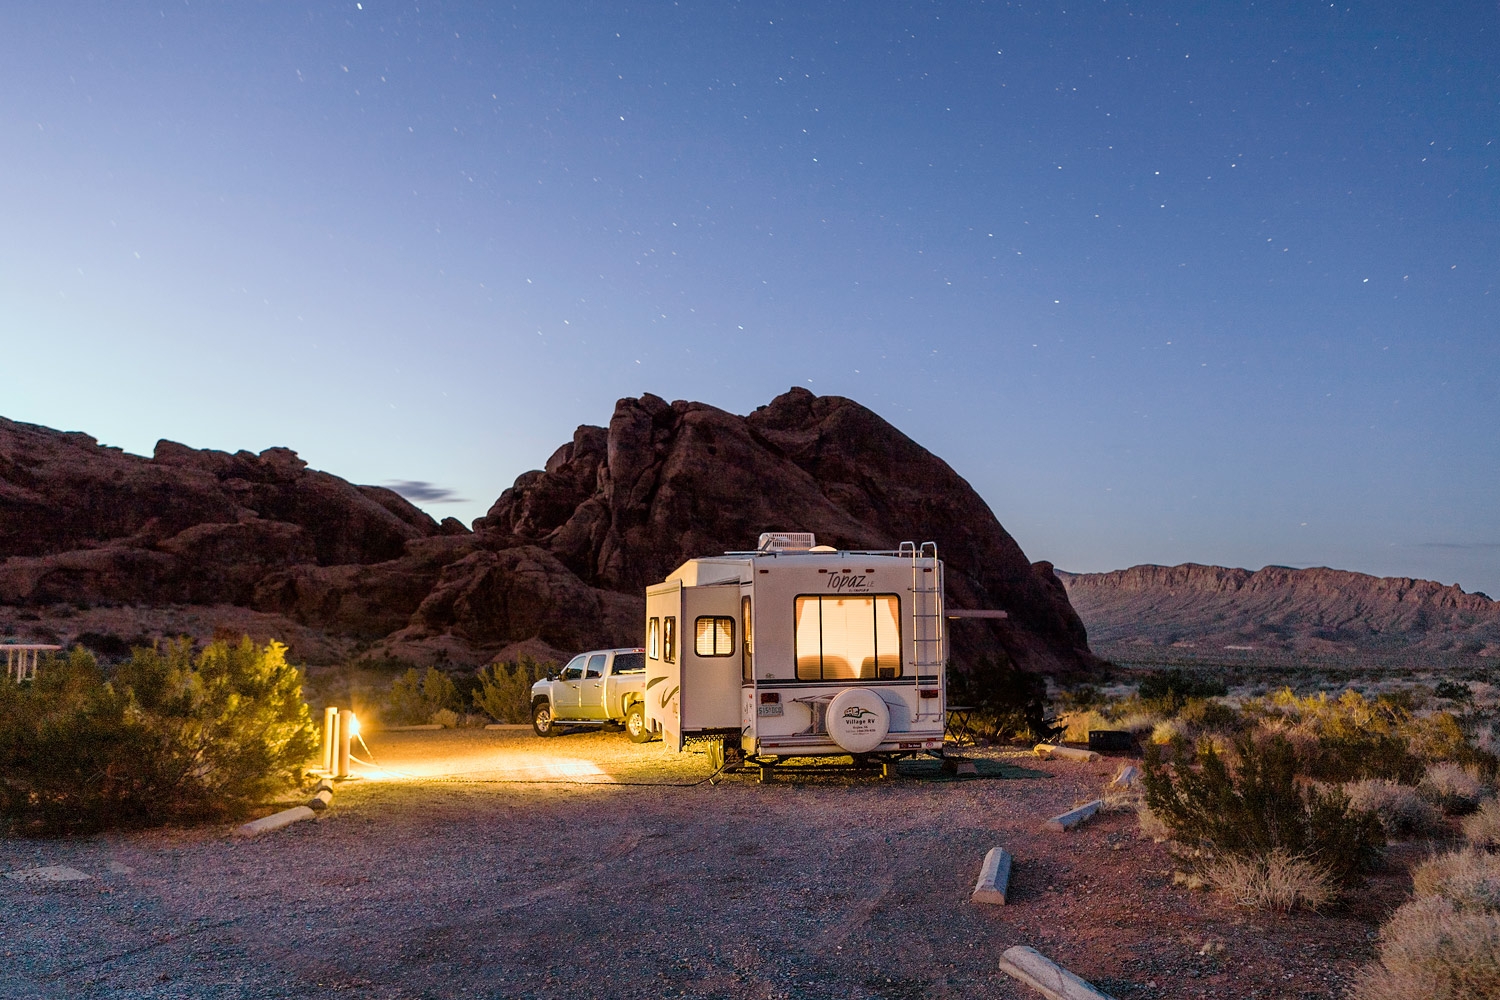 End of Day. Valley of Fire. NV